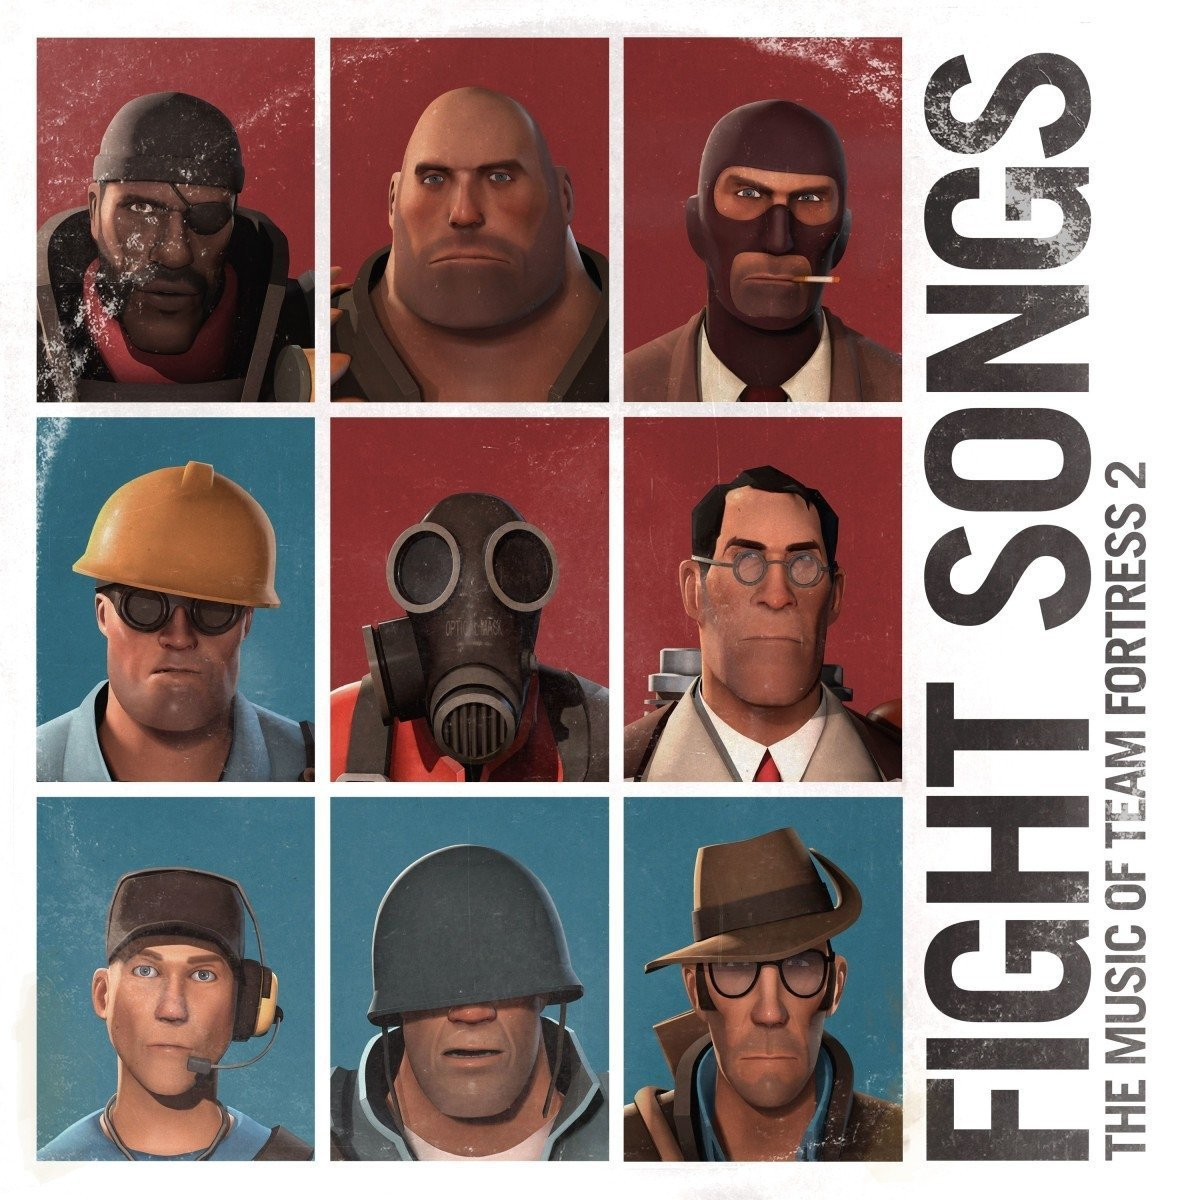 CD : Valve Studio Orchestra - Fight Songs: The Music Of Team Fortress 2 (CD)